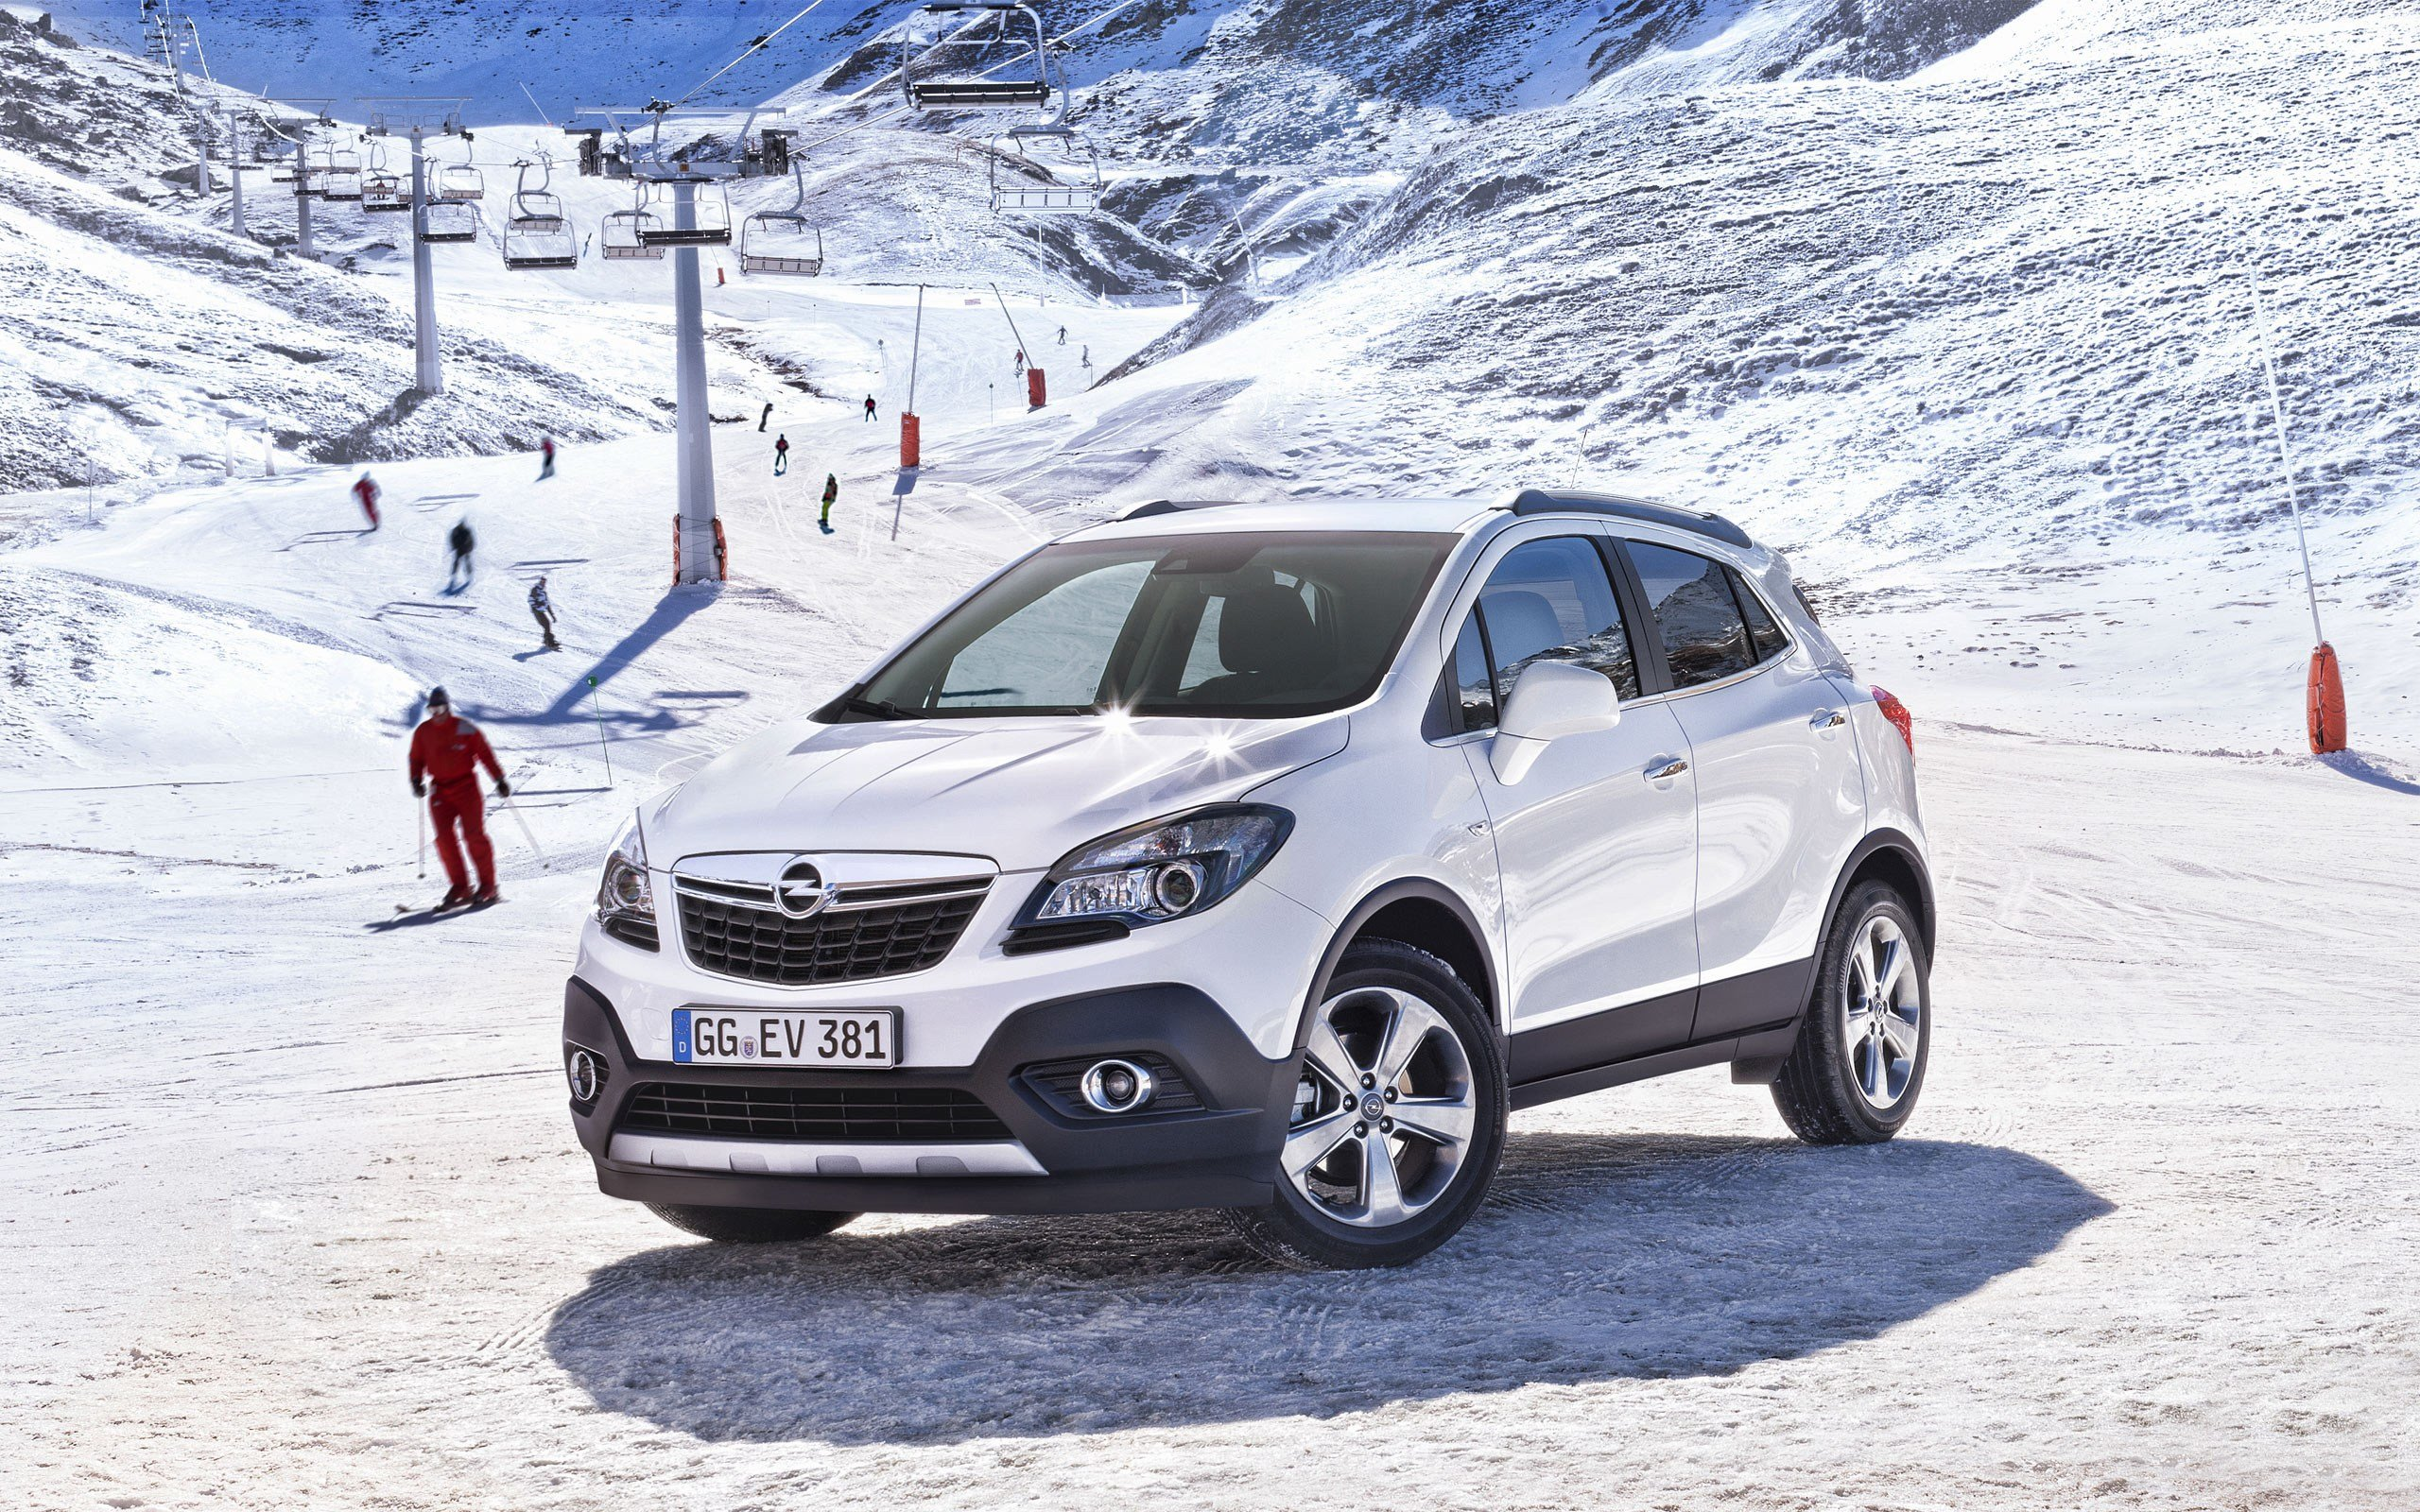 New 2013 Opel Mokka Wallpaper Hd Car Wallpapers Id 3082 On This Month